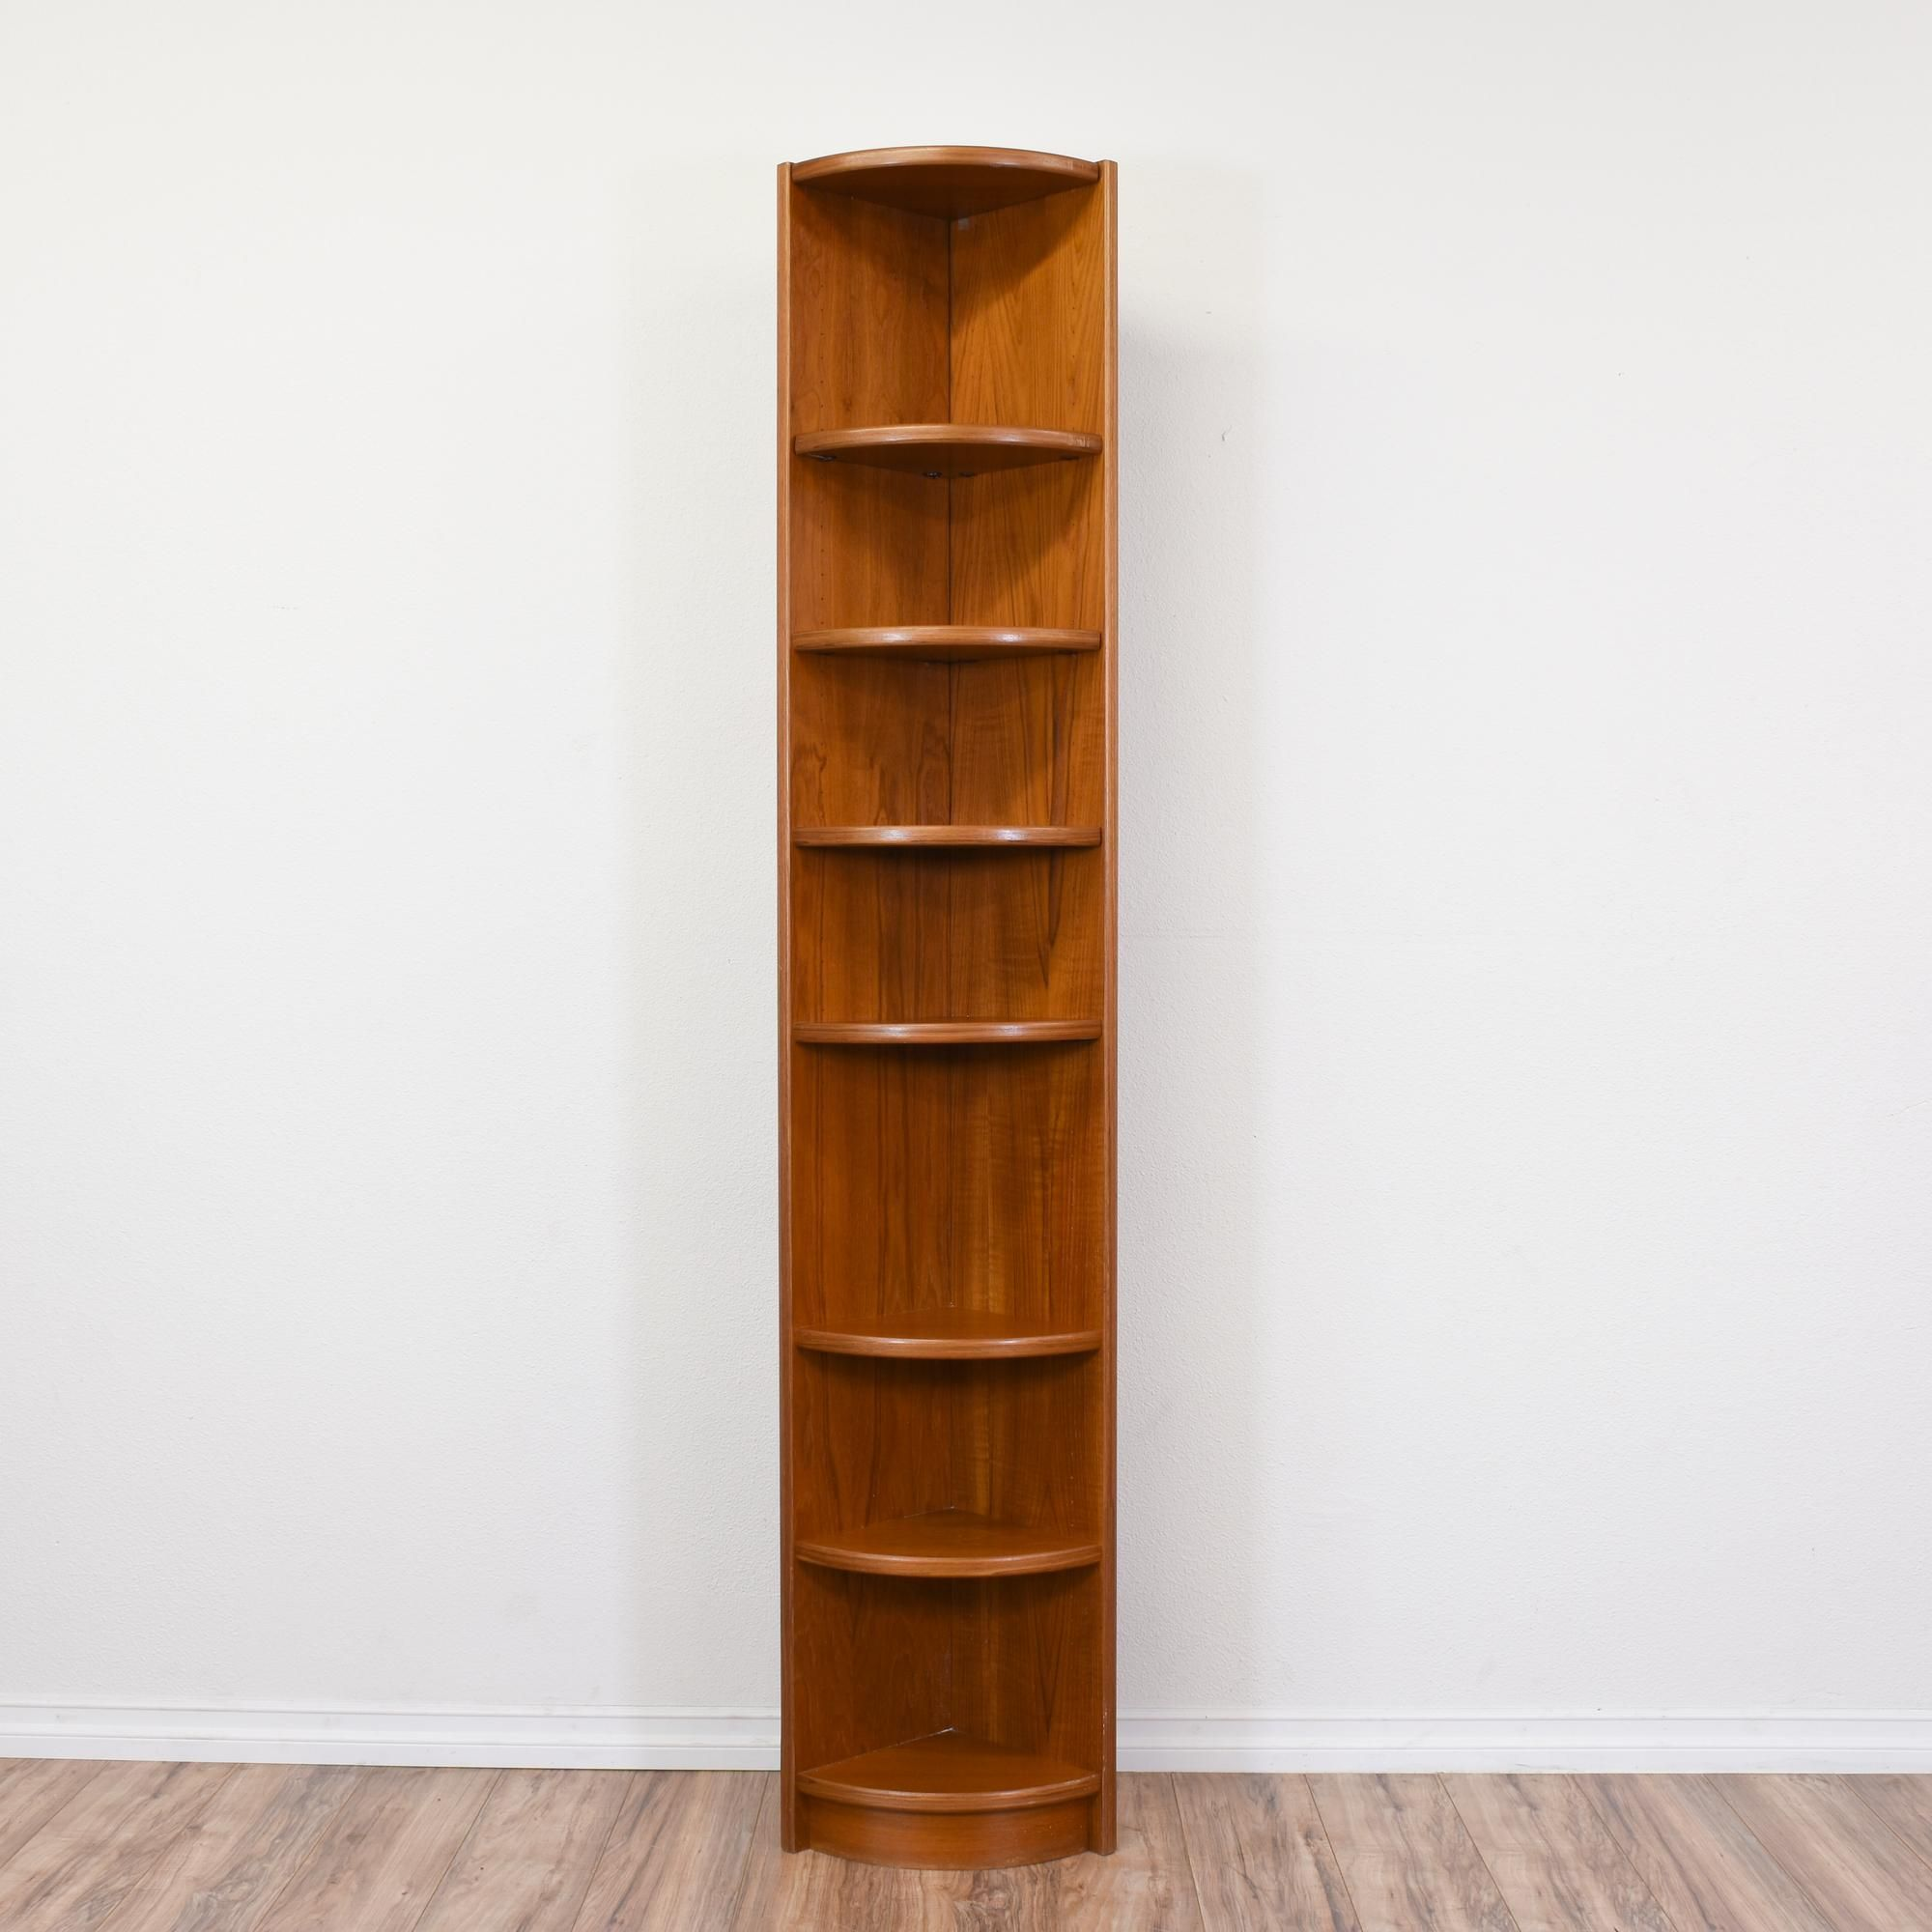 This Danish Modern Corner Shelf Is Featured In A Wood With A